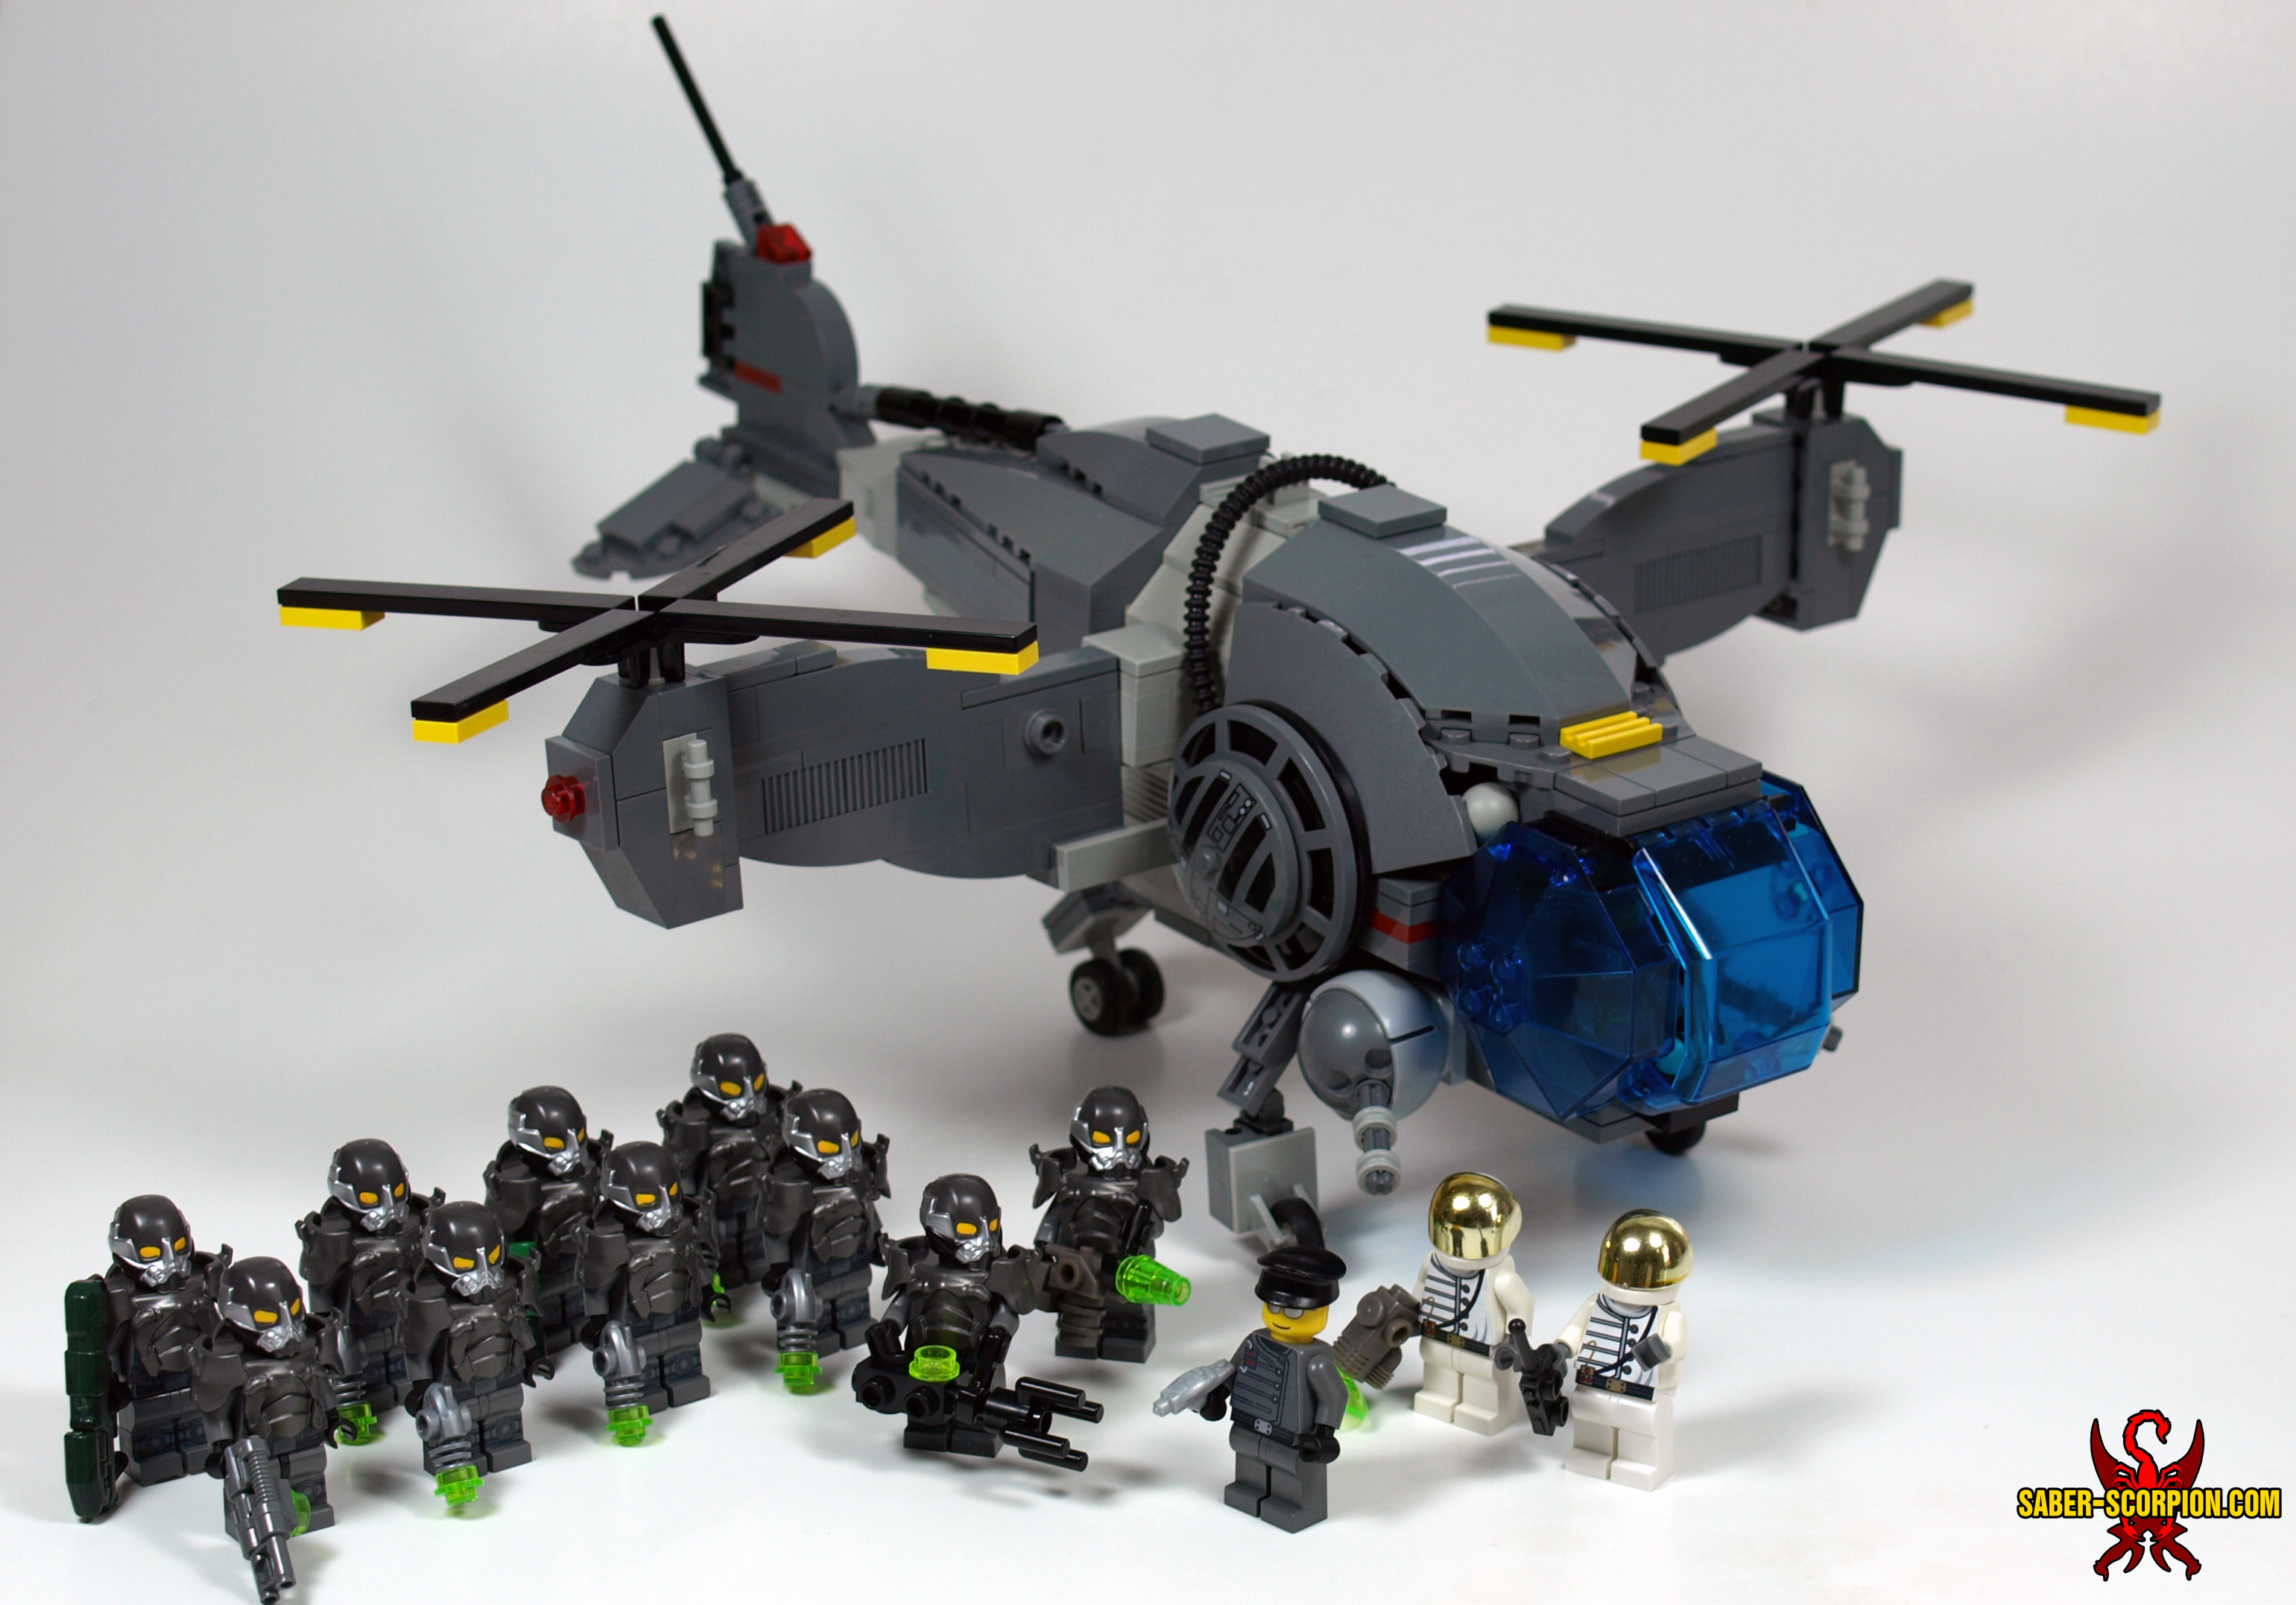 army helicopter toy with 14837918461 on 151790672891 besides Wholesale Lego Army Soldiers likewise Army Coloring Pages as well Kriegsschiff additionally Watch.